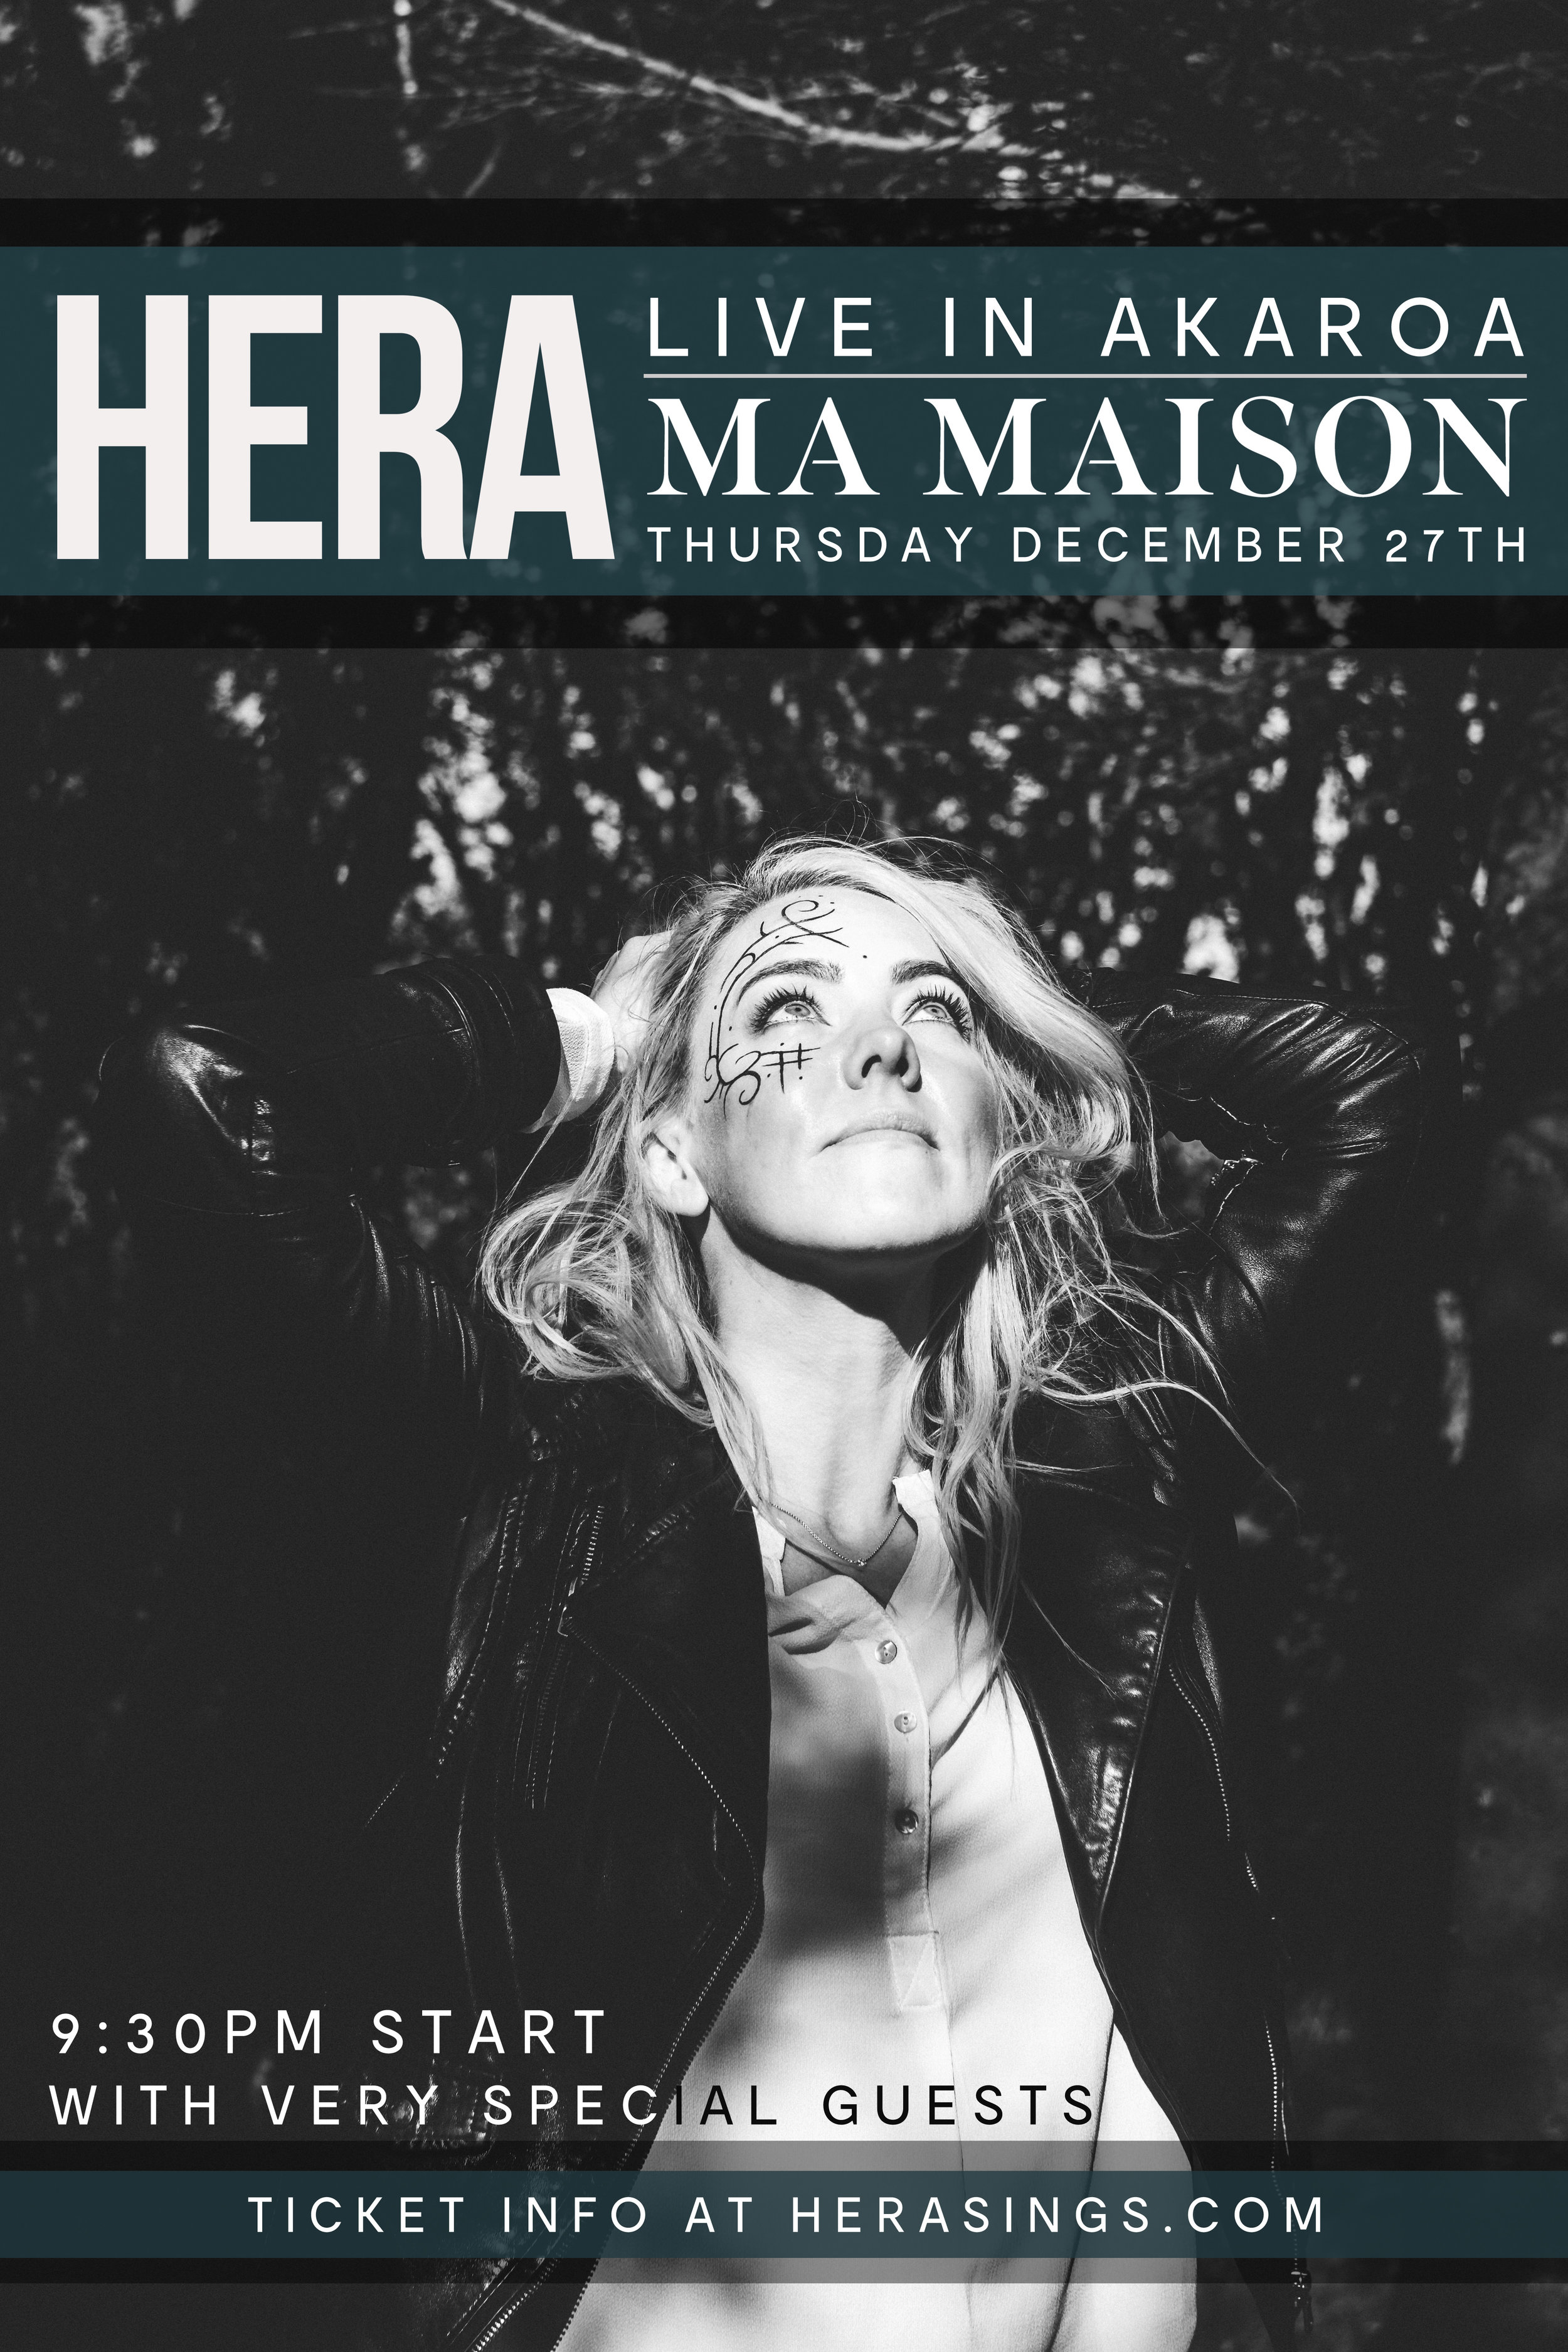 Fresh from recording in Iceland, Hera will perform a one-off concert at Akaroa's one and only Ma Maison restaurant.  9.30pm start, with very special guests..  Tickets are limited due to venue size - Pre-sales available here -  https://herasings.bandcamp.com   Icelandic born, New Zealand based singer-songwriter Hera, has toured the globe for many years playing and touring in Italy, Holland, Greenland, England, Scotland, Wales, Denmark, the United states at the SXSW music festival, the famous Glastonbury festival in the UK and of course Iceland and New Zealand to name a few. She has a gold record in Iceland, and was named 'best female artist' at the Icelandic music awards in 2003, and her song 'Makebelieve' was a finalist in the USA songwriting competition.  Her music is noticeably unique and has been influenced strongly by dual emotional investment in both of her cultures. Effortlessly blending foreign sounds and language with our familiar version of folk and acoustic pop, she will take you on a journey of discovery upon which you will hear a refreshing take on what an acoustic singer-songwriter can achieve.  French for 'My House' Ma Maison provides an intimate setting and stunning views over Akaroa harbour.